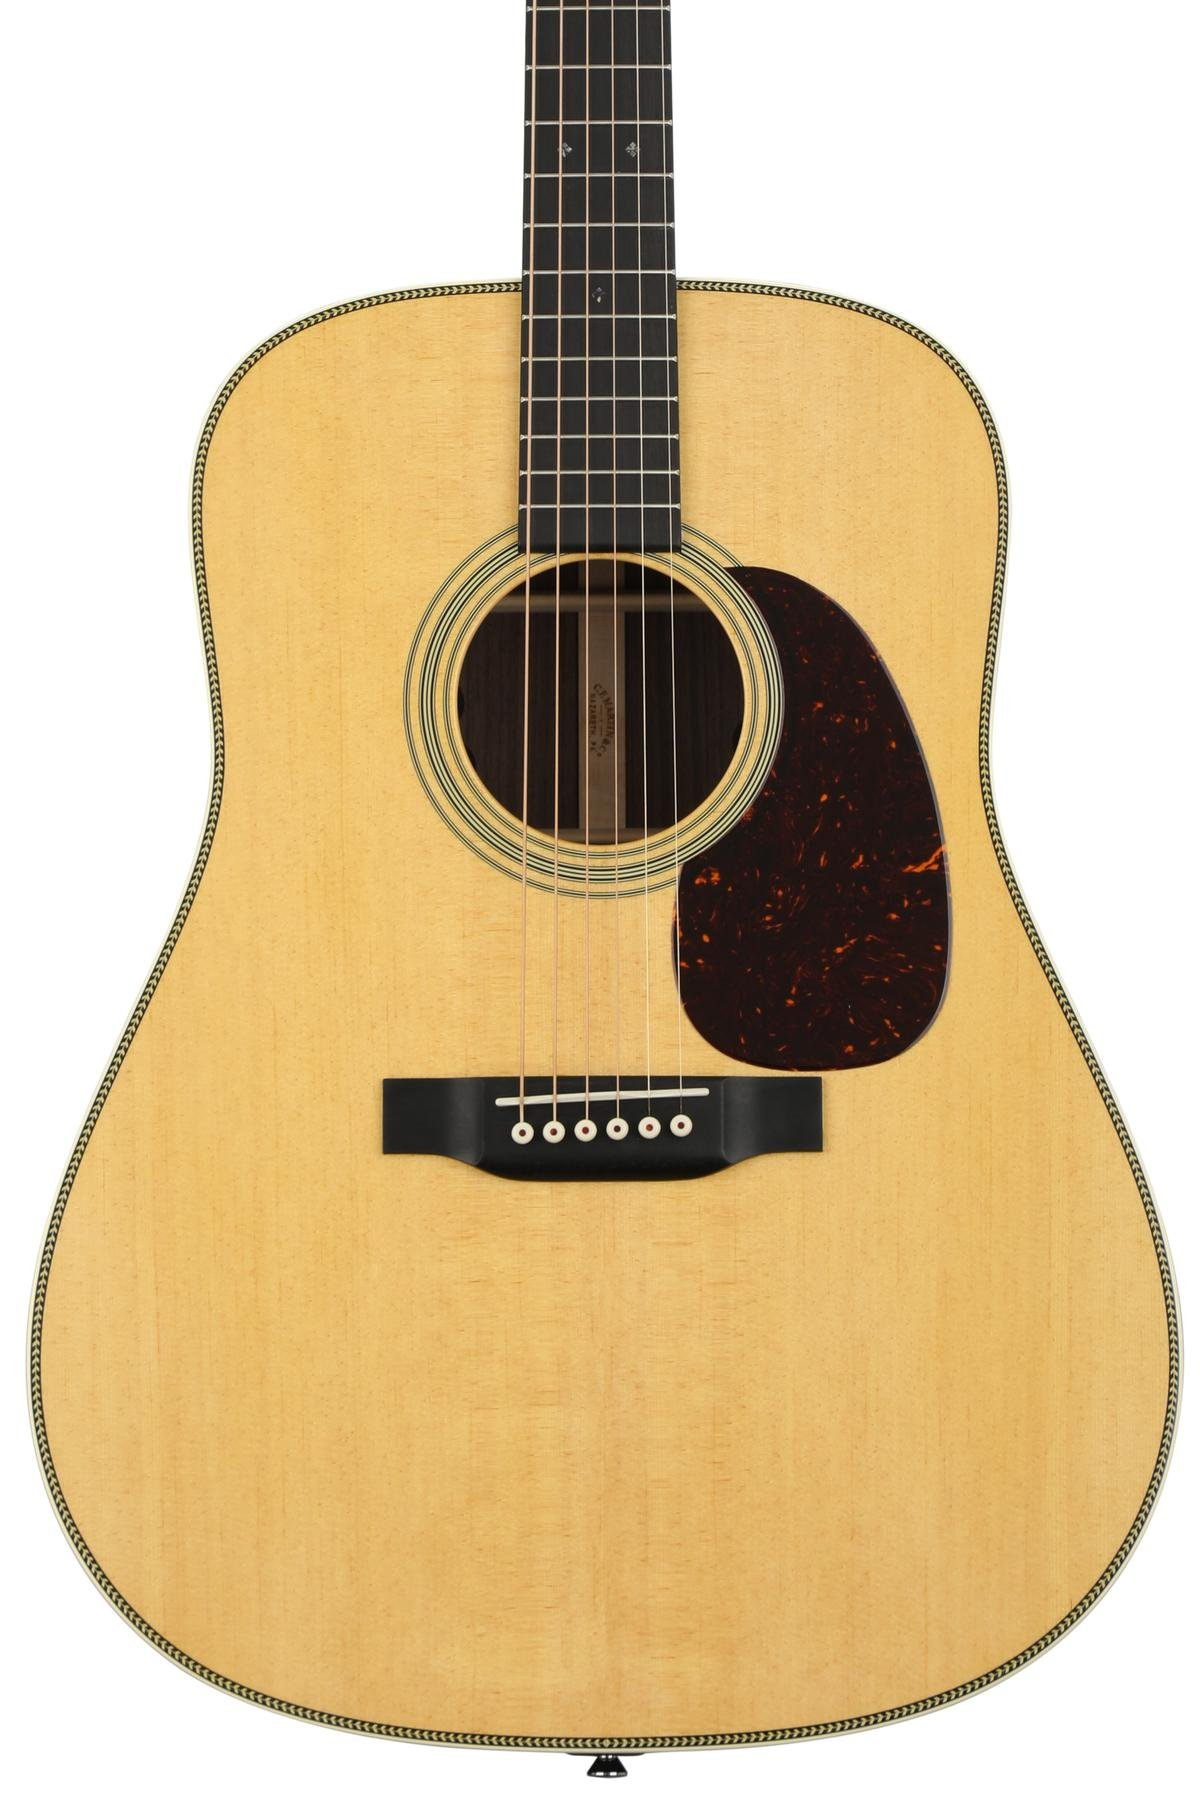 Martin Hd 28e Acoustic Guitar With Fishman Electronics Natural Sweetwater